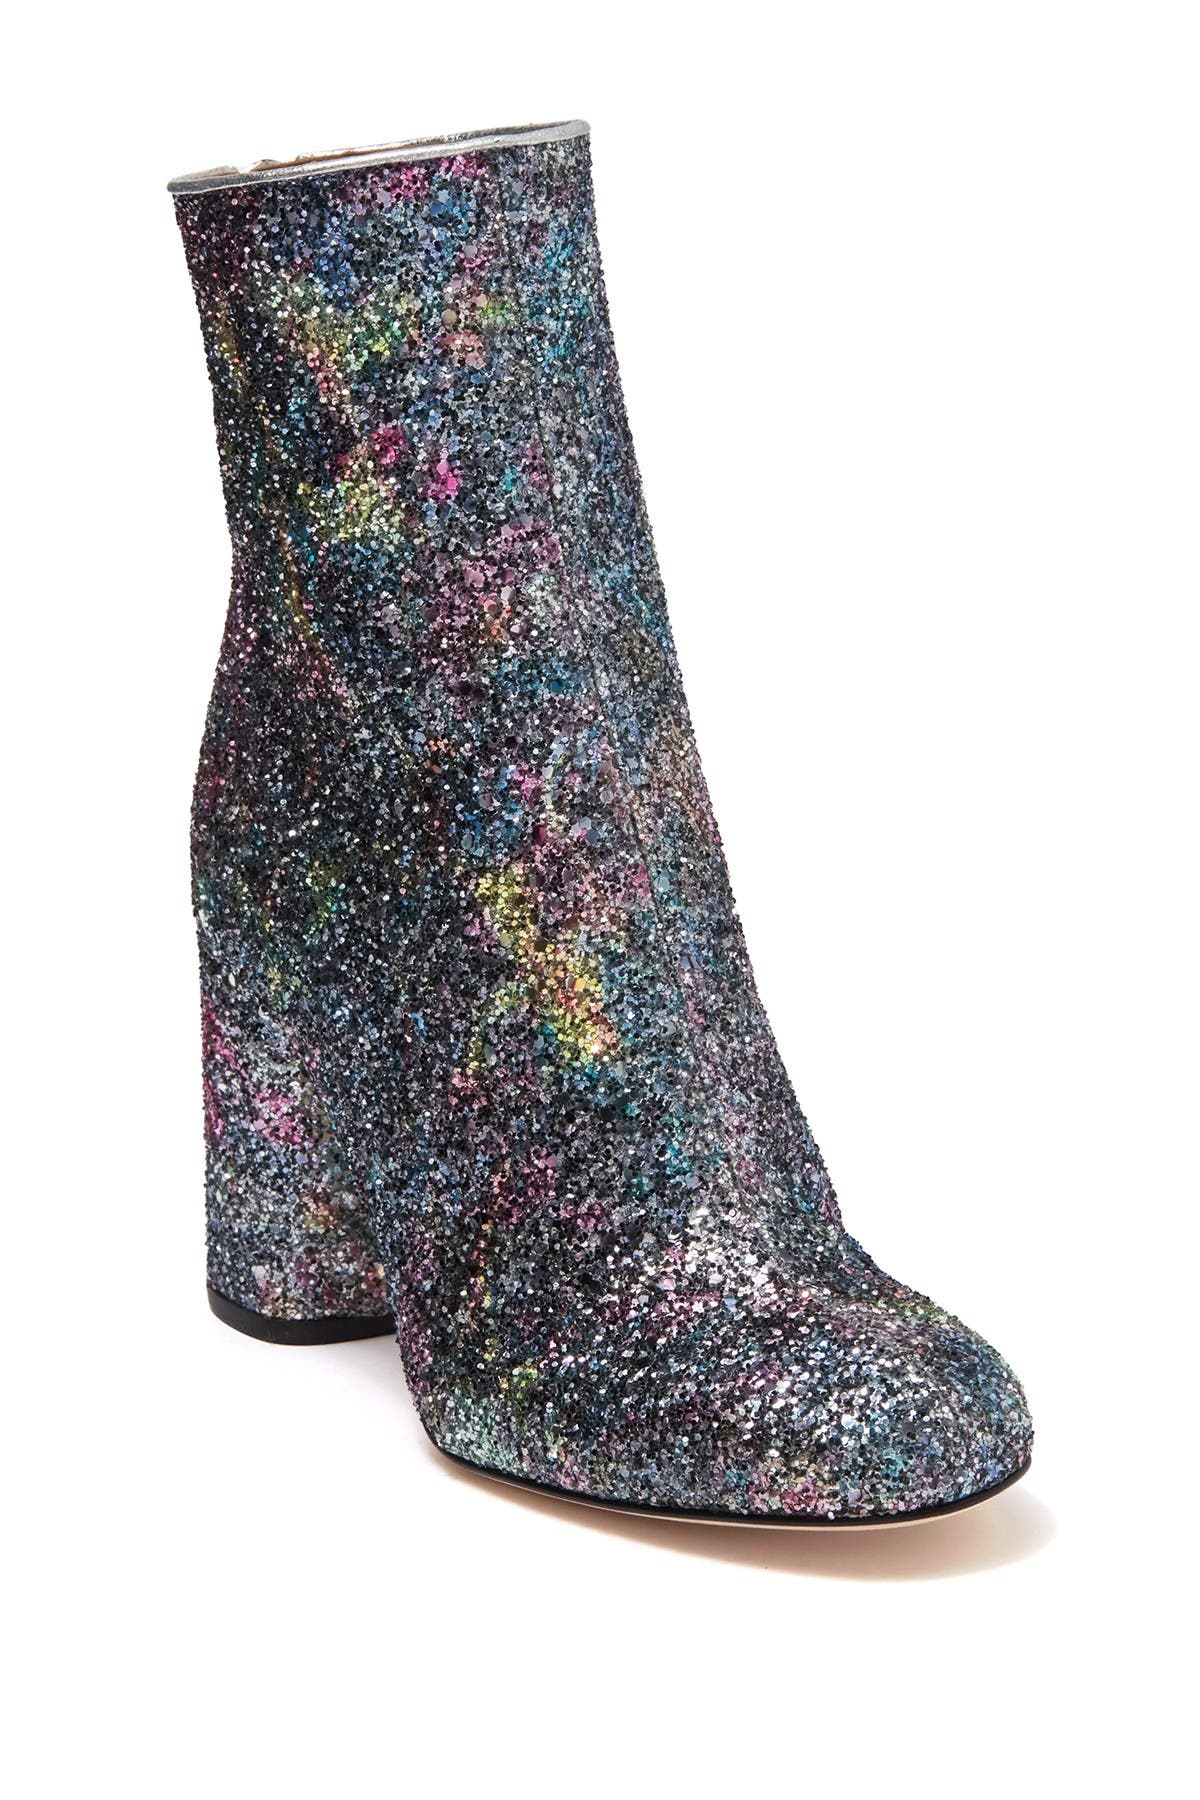 Image of Missoni Glitter Ankle Boot